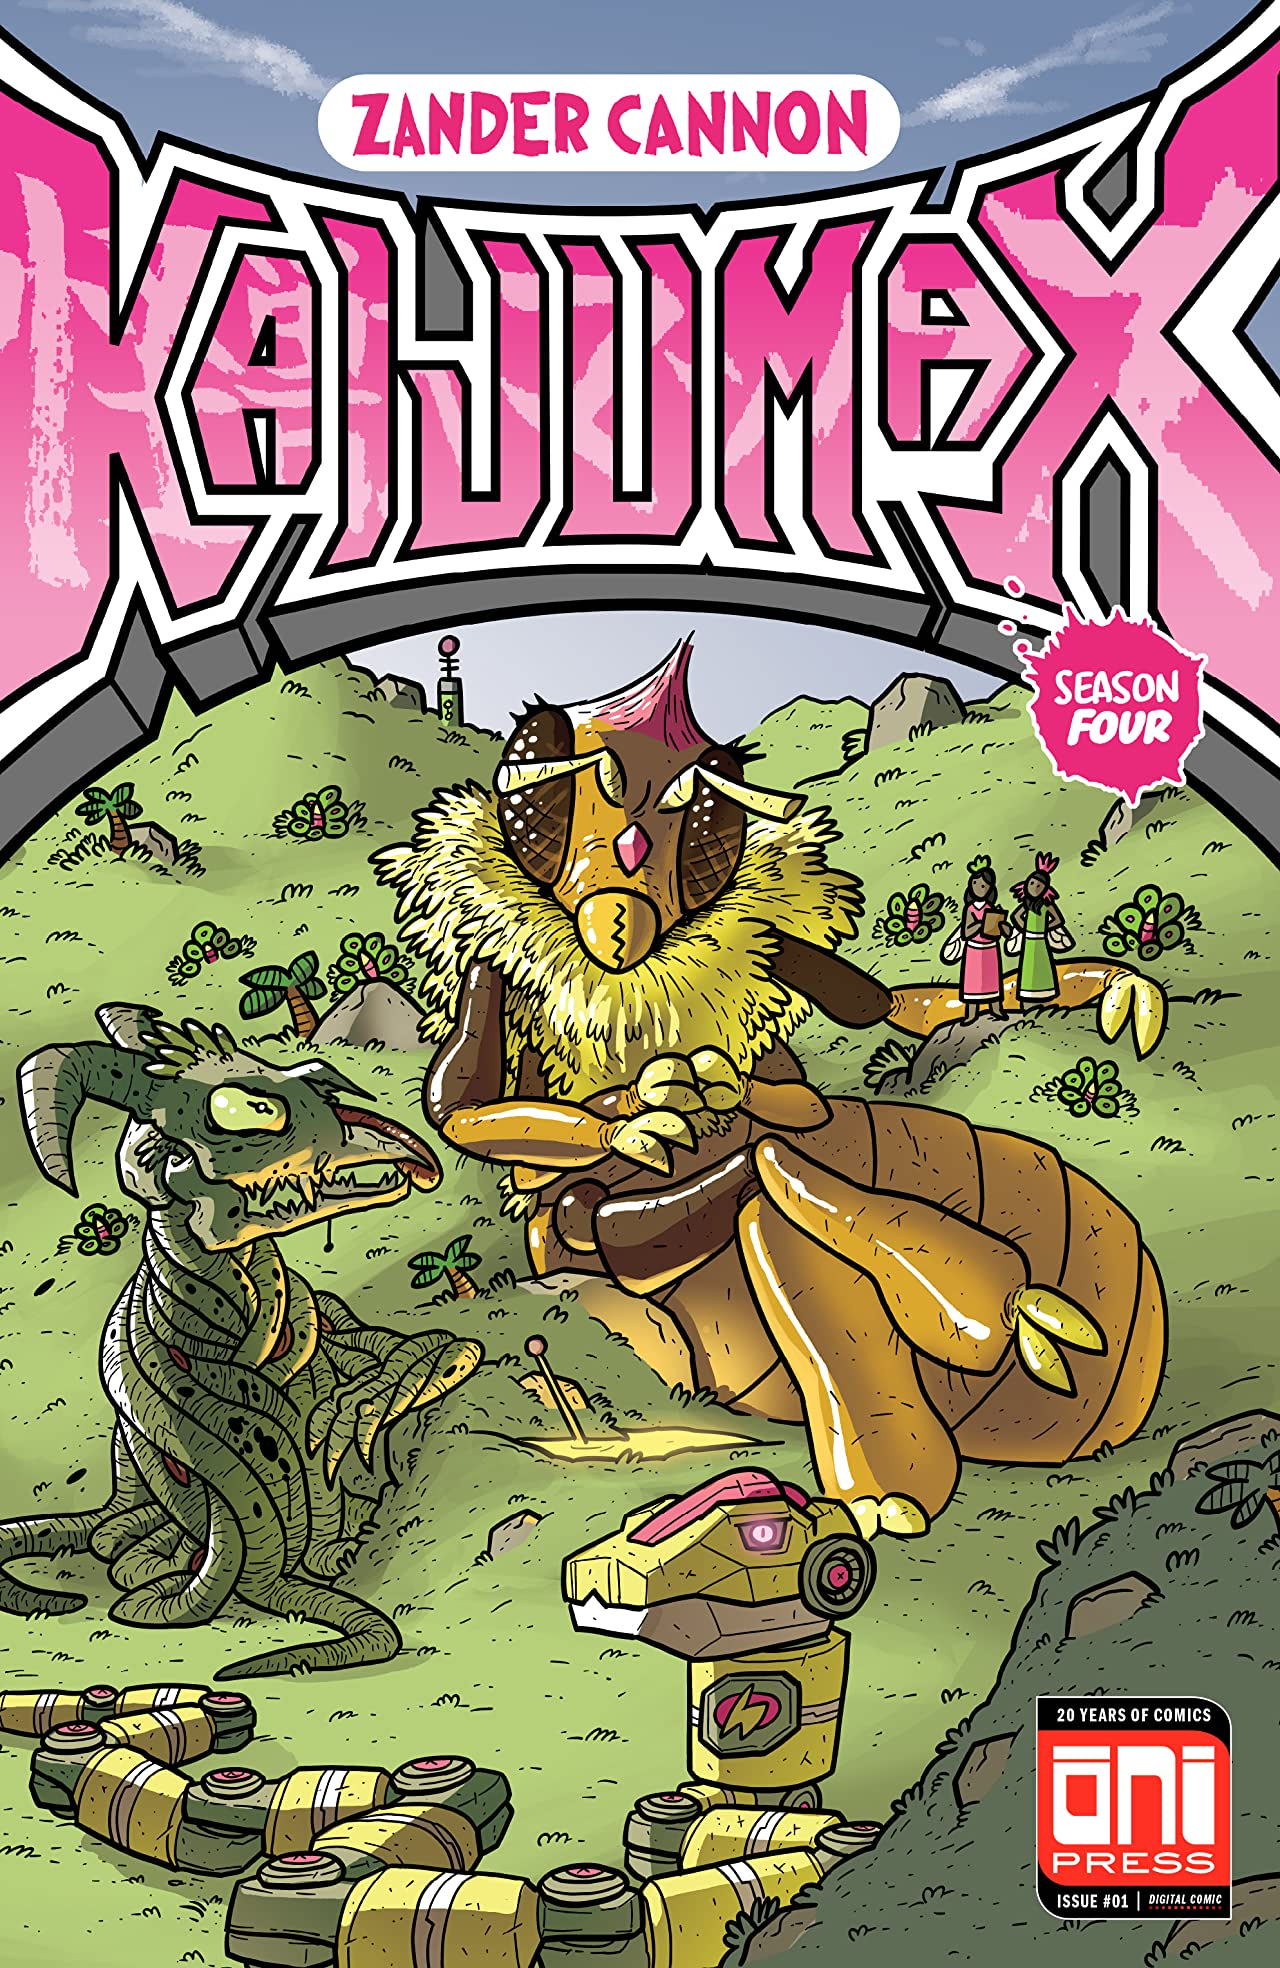 Kaijumax: Season Four No.1